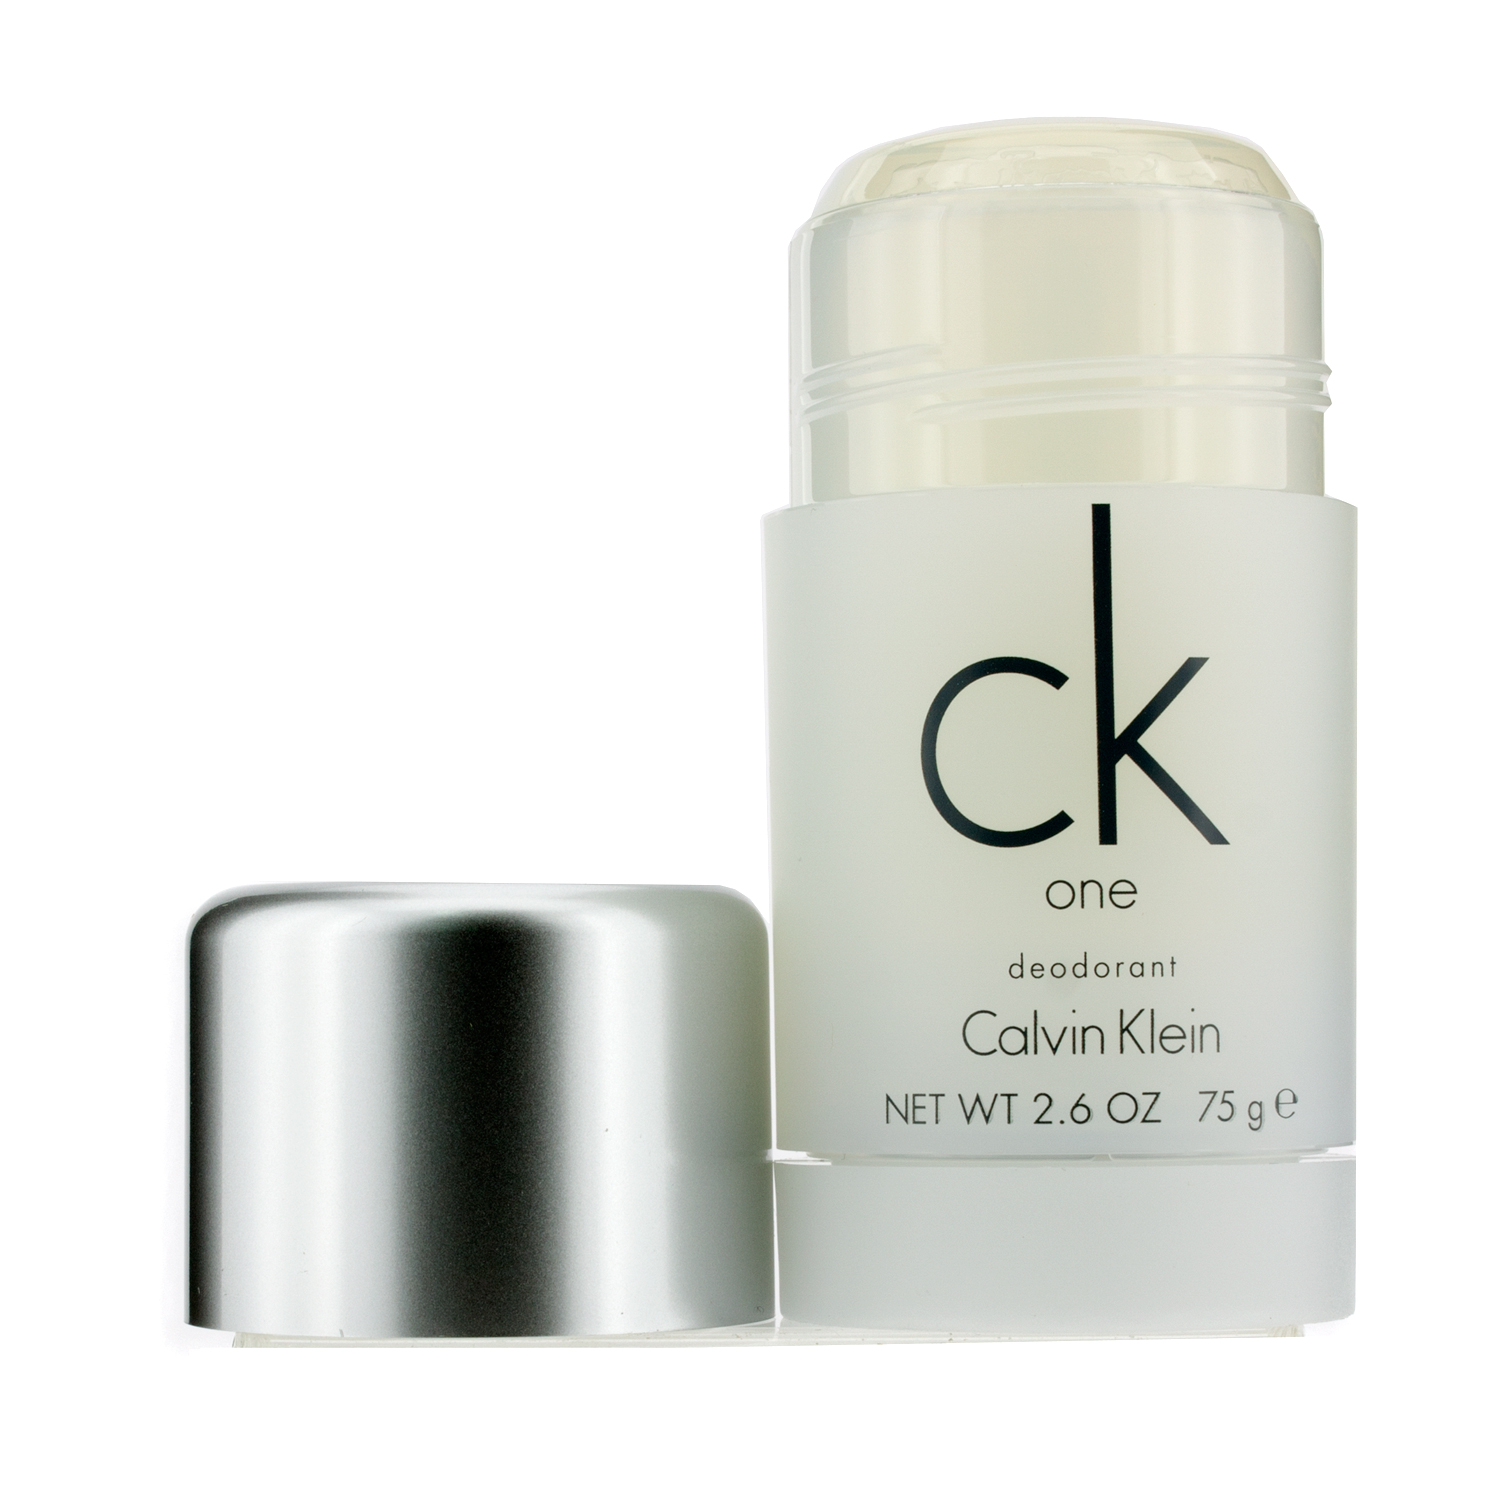 ck one deodrant stick1